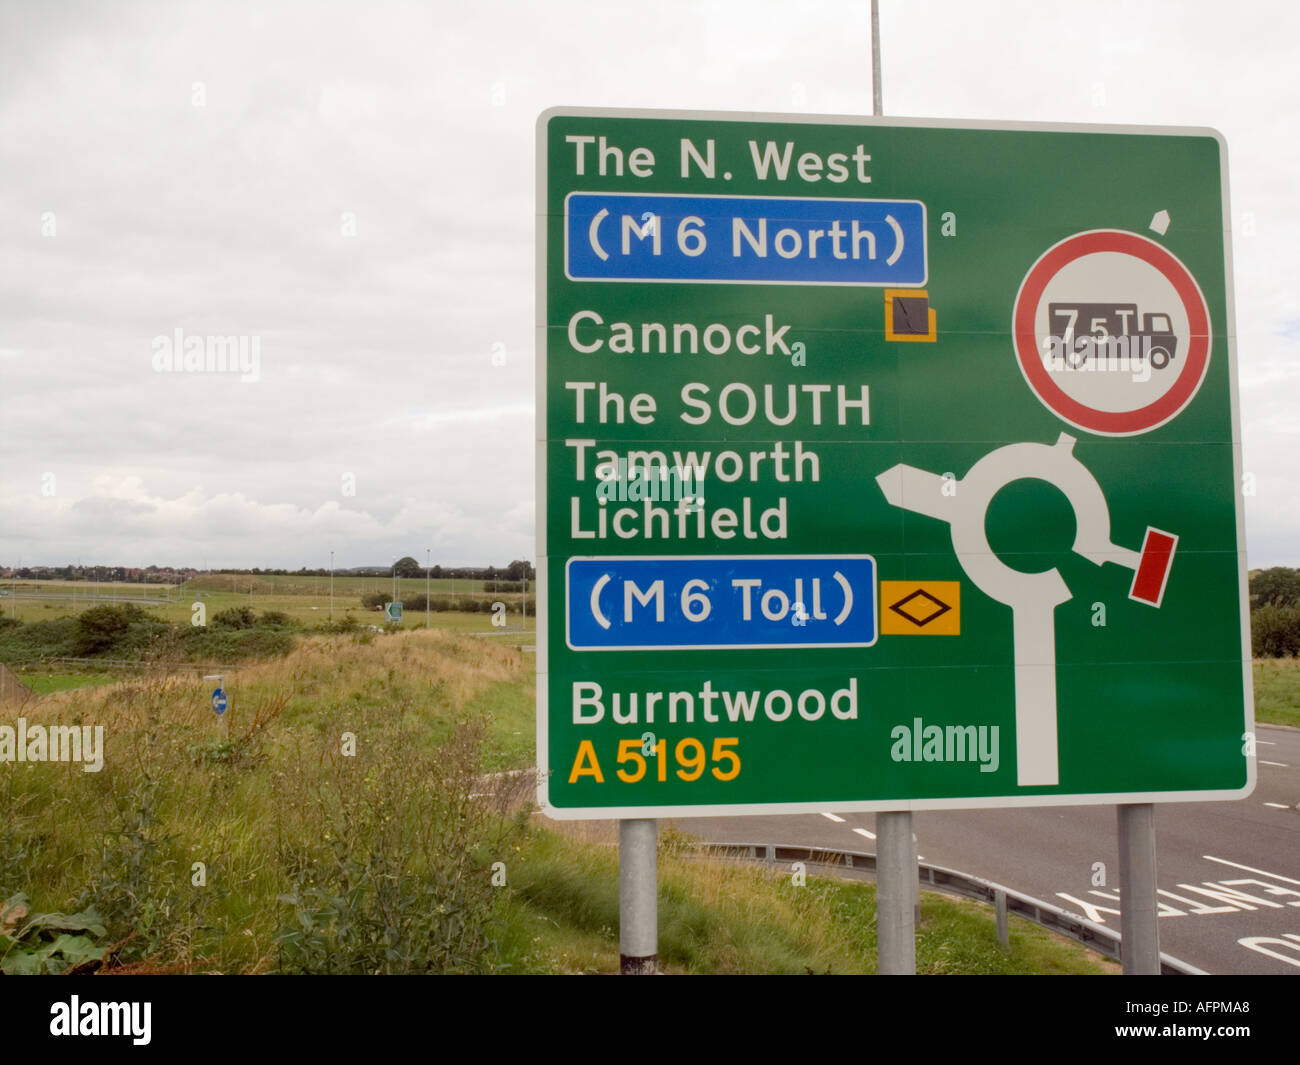 M6 TOLL road sign on approach slip road Burntwood Staffordshire England UK - Stock Image